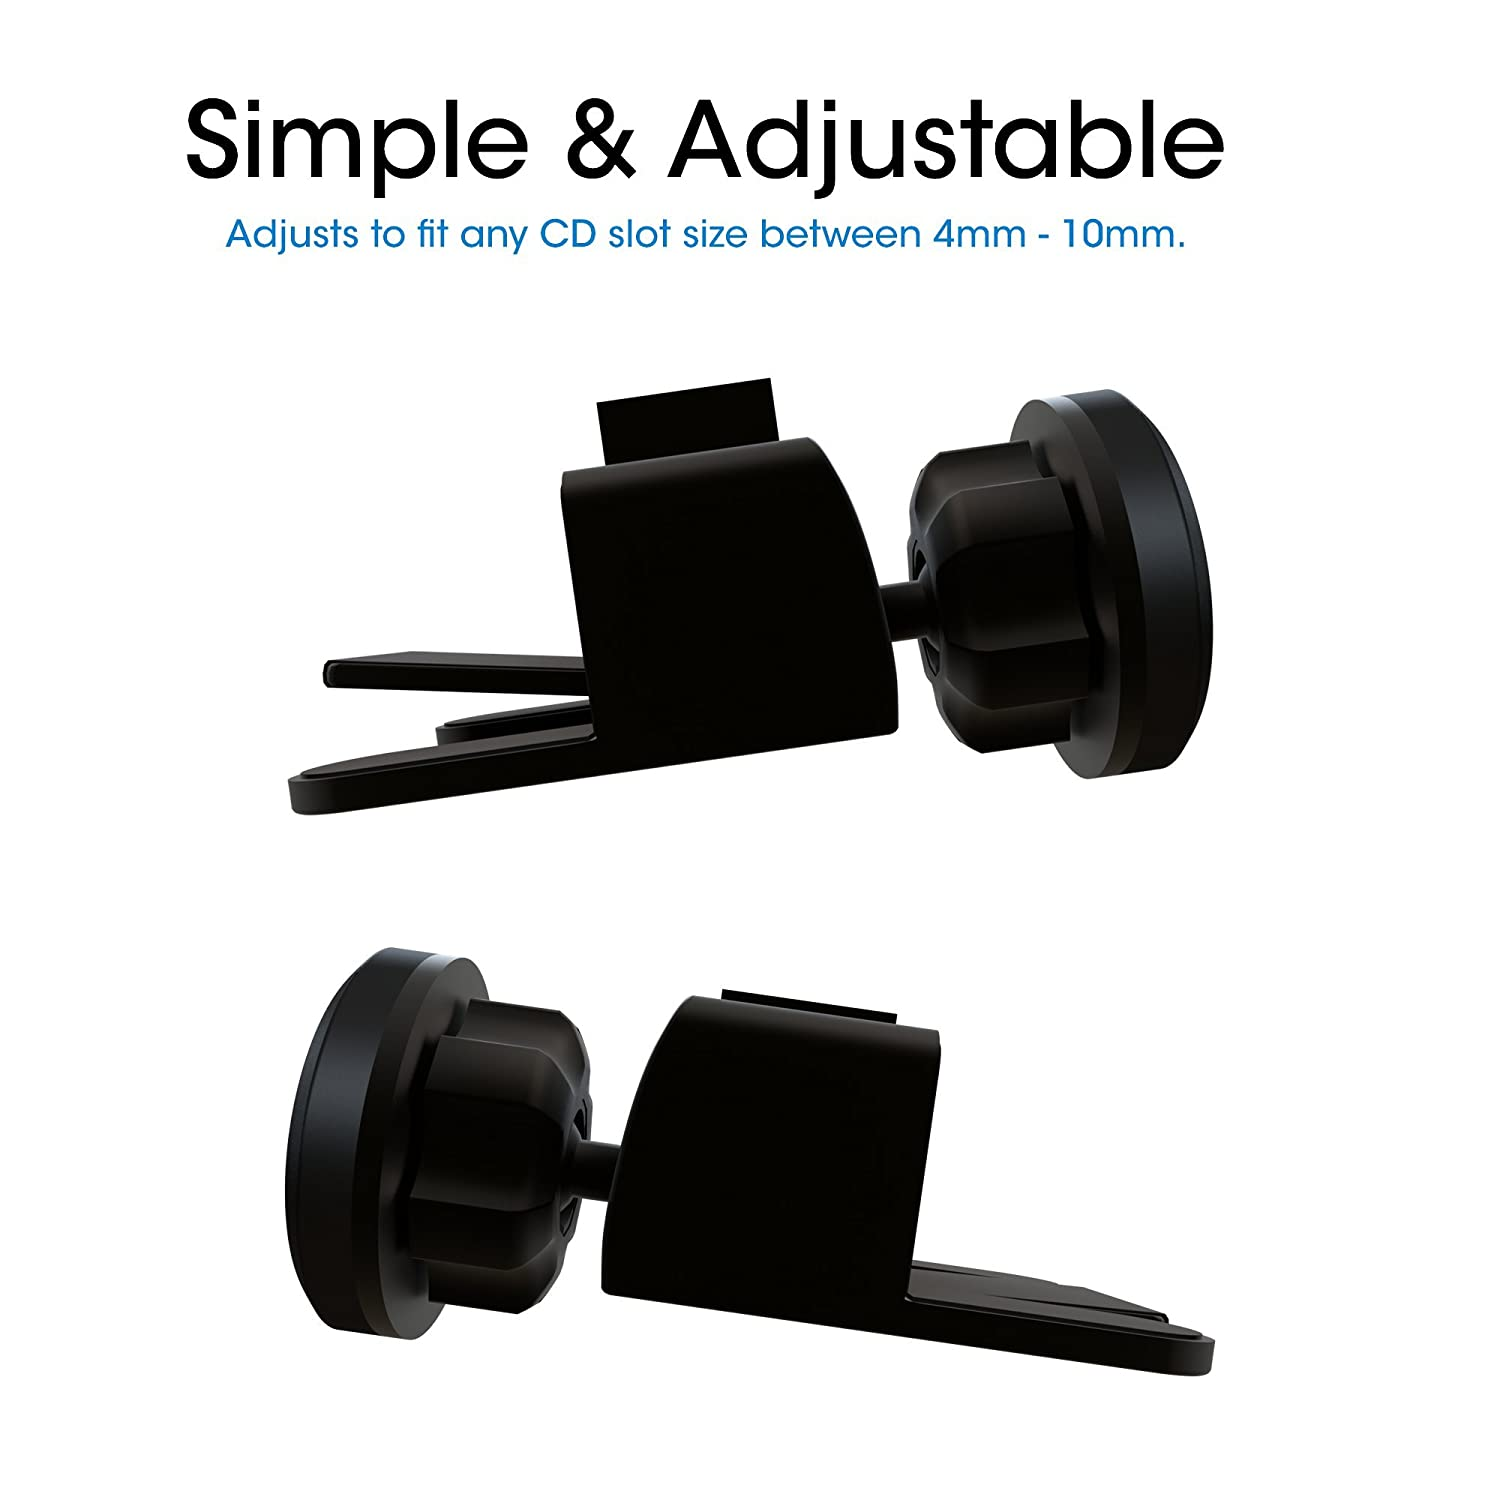 TechMatte MagGrip Universal Magnetic CD Slot Mini Car Mount with Extra Strong Magnetic Grip 1 Pack LYSB01E86ONW2-ELECTRNCS